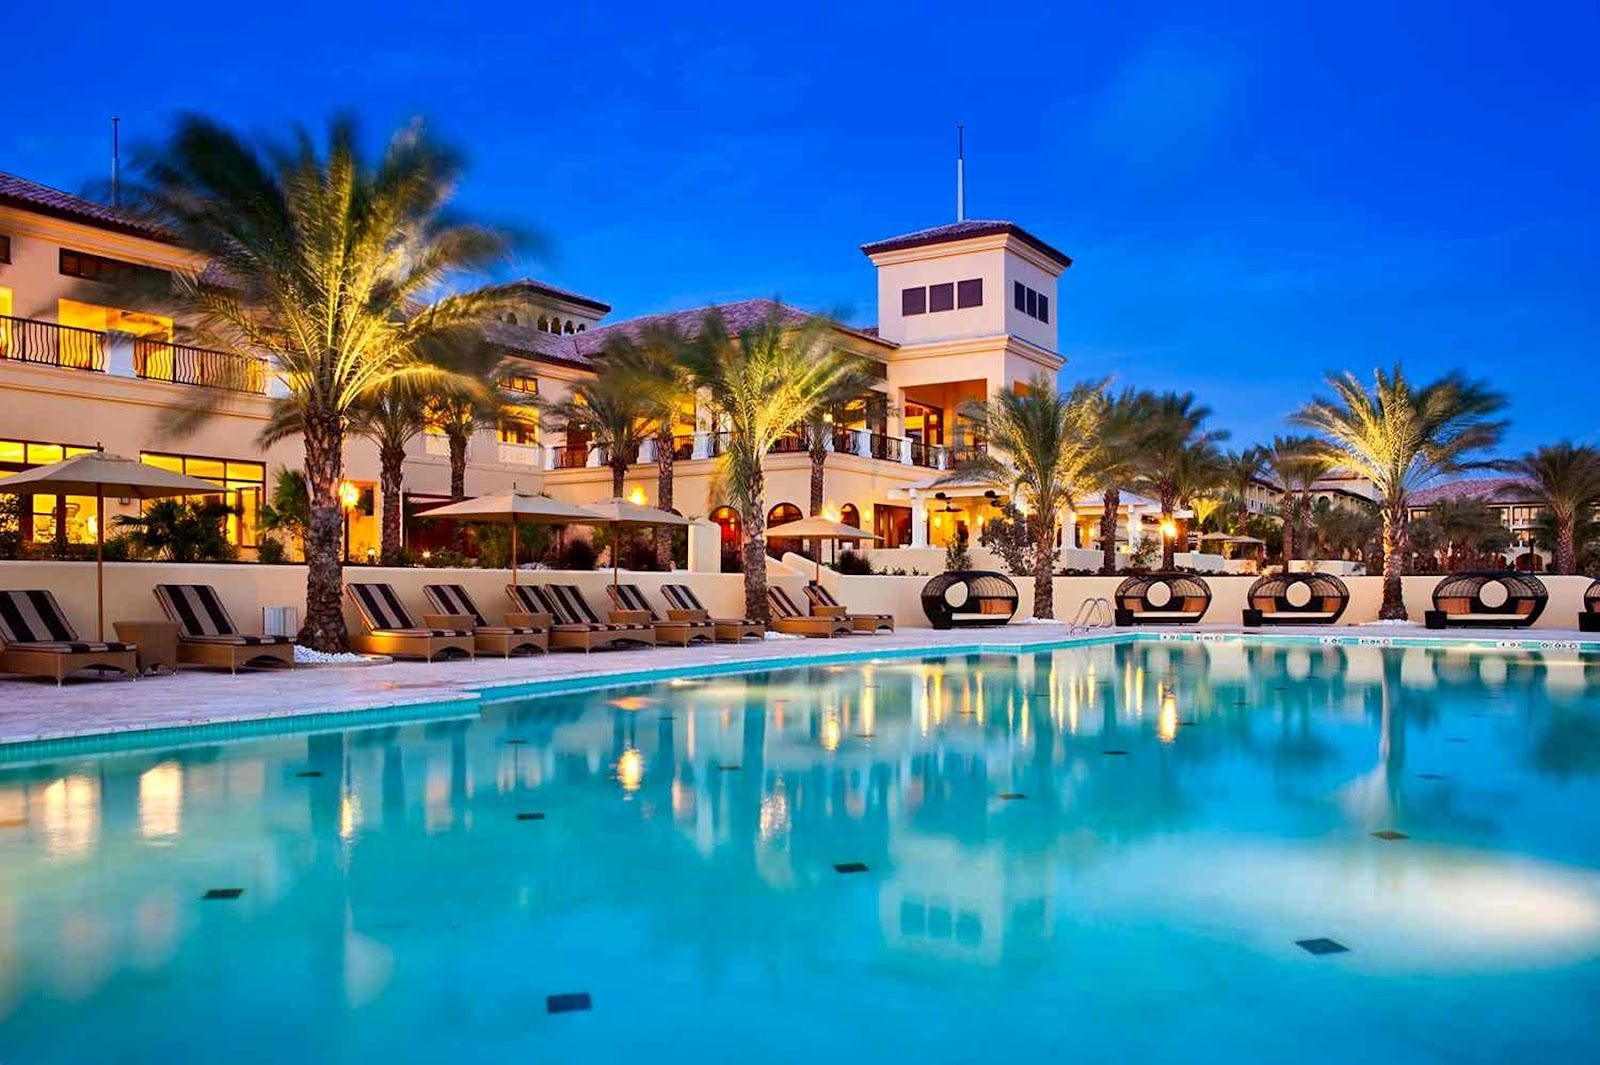 Located At Santa Barbara Plantation The 350 Room Hyatt Regency Curaçao Golf Resort Spa And Marina Is Part Of A 1 500 Acre Luxury Community